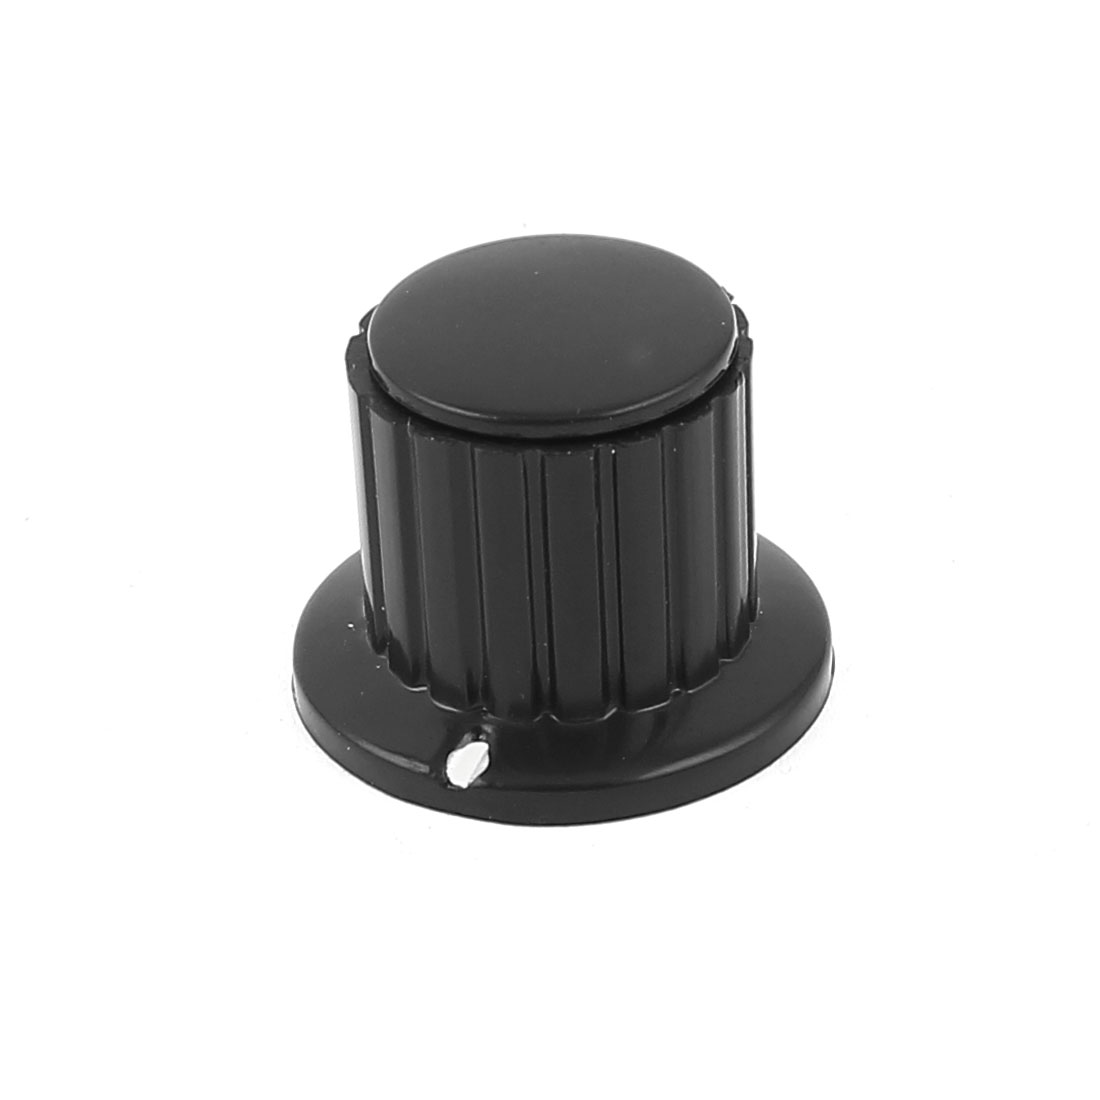 "Black Ribbed Grip 1/4"" Split Shaft Potentiometer Control Knobs"